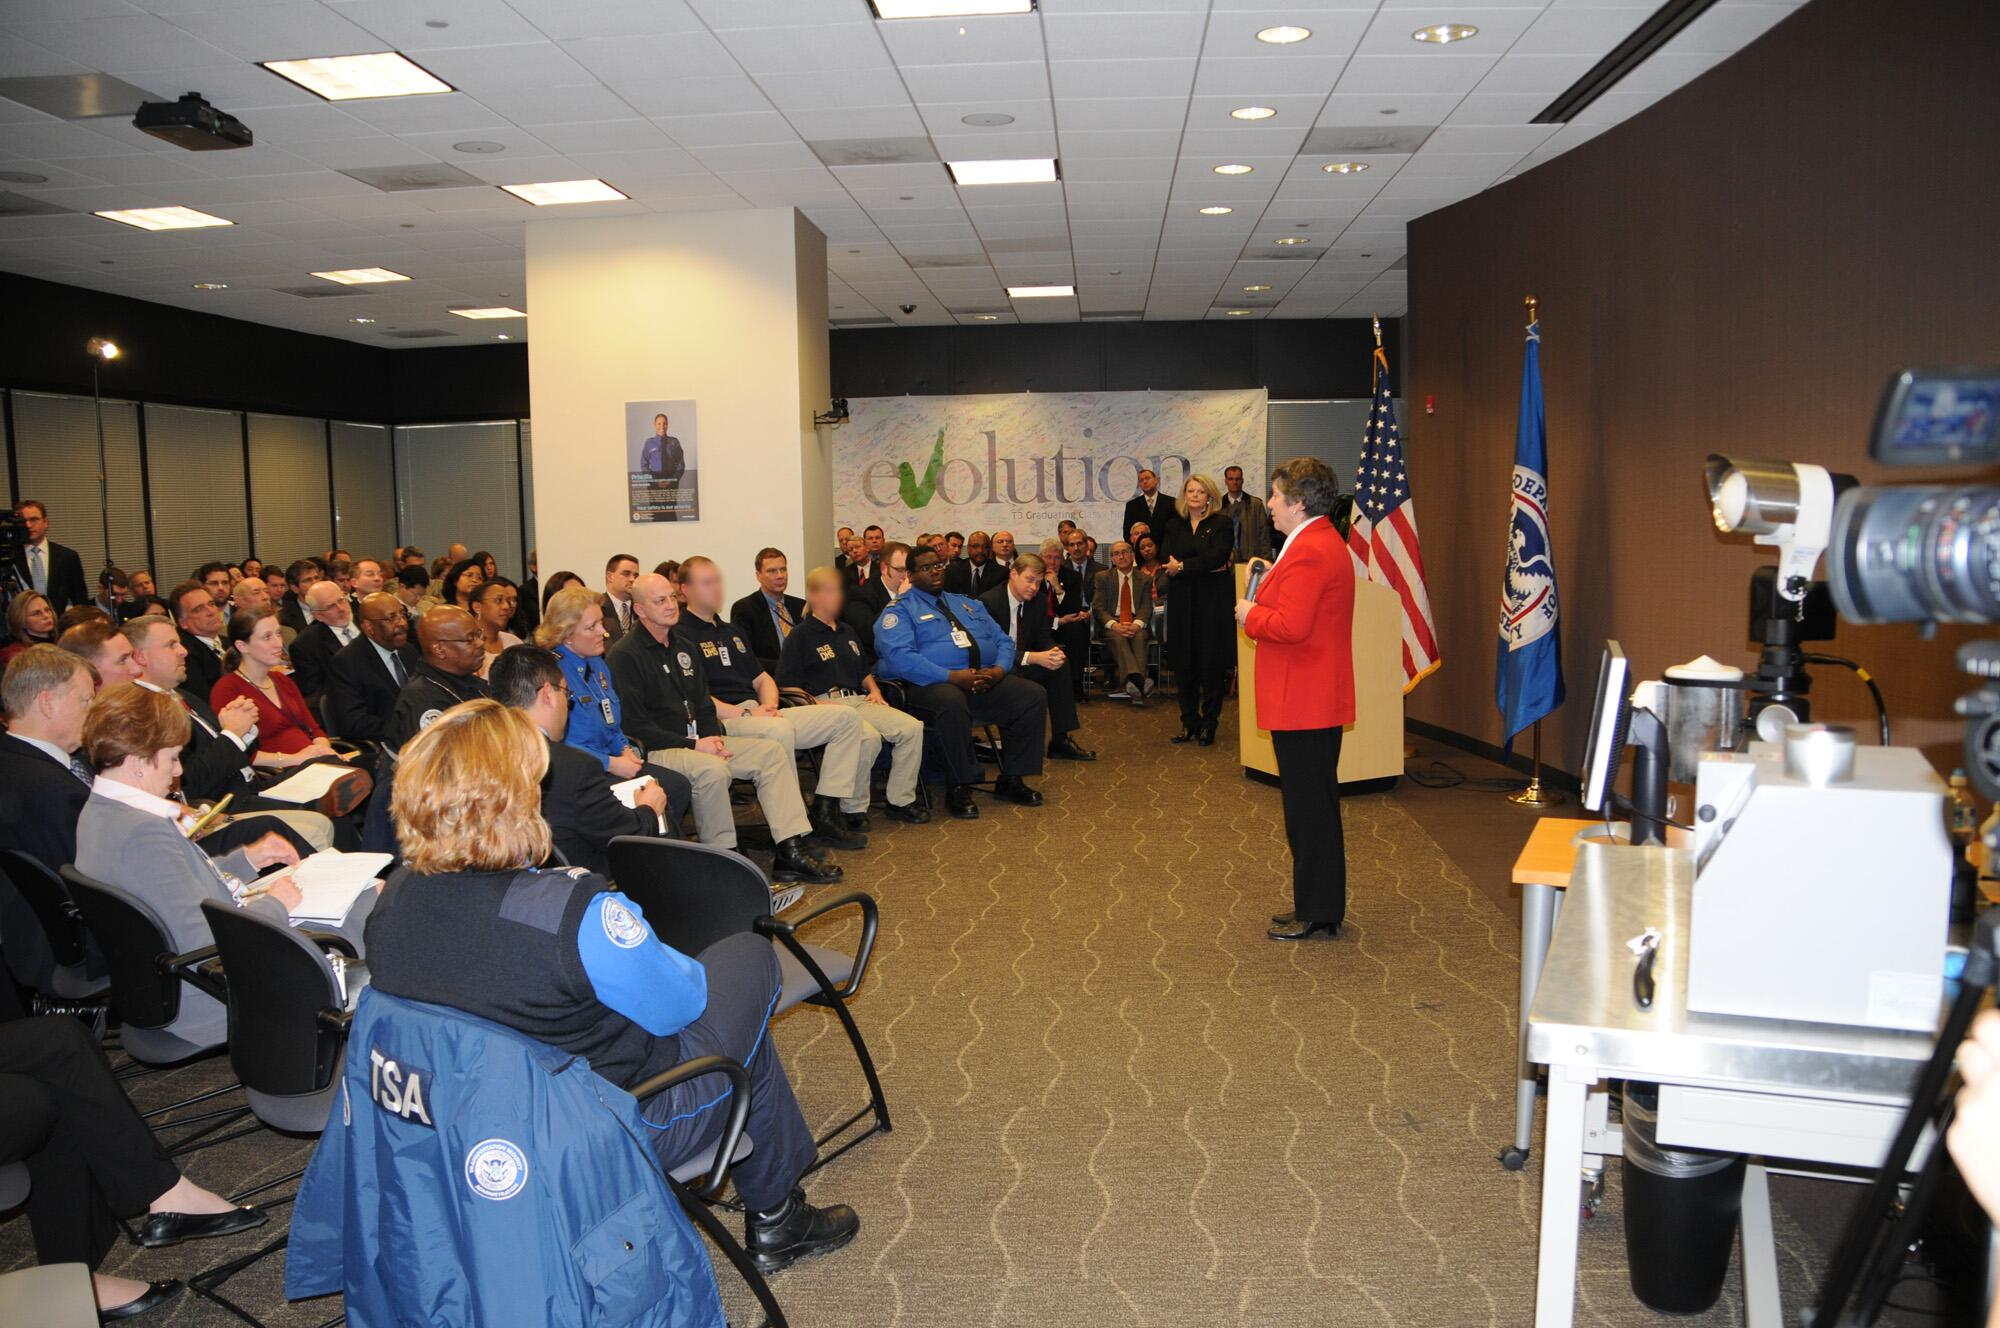 January 26, 2009 - Secretary of Homeland Security Janet Napolitano visits the Transportation Security Administration headquarters and conducted a town hall with TSA employees.   (TSA Photo/Dittberner